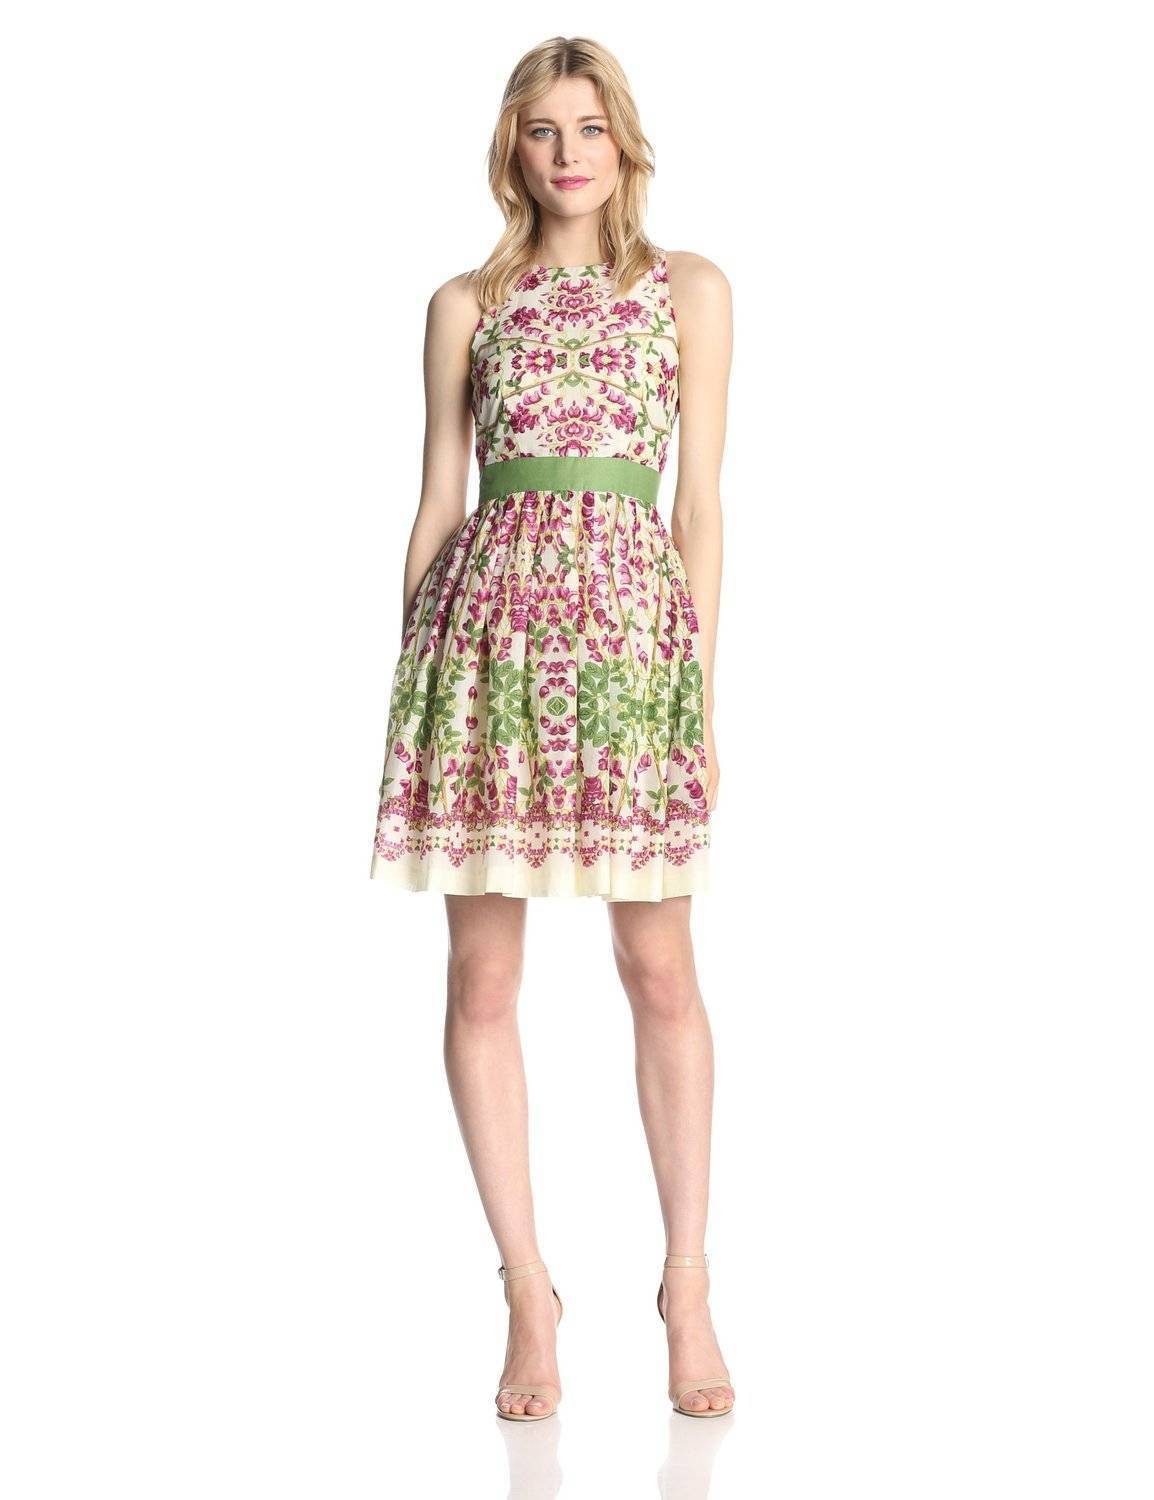 Taylor Dresses Women's Sleeveless Printed Knee Length Dress